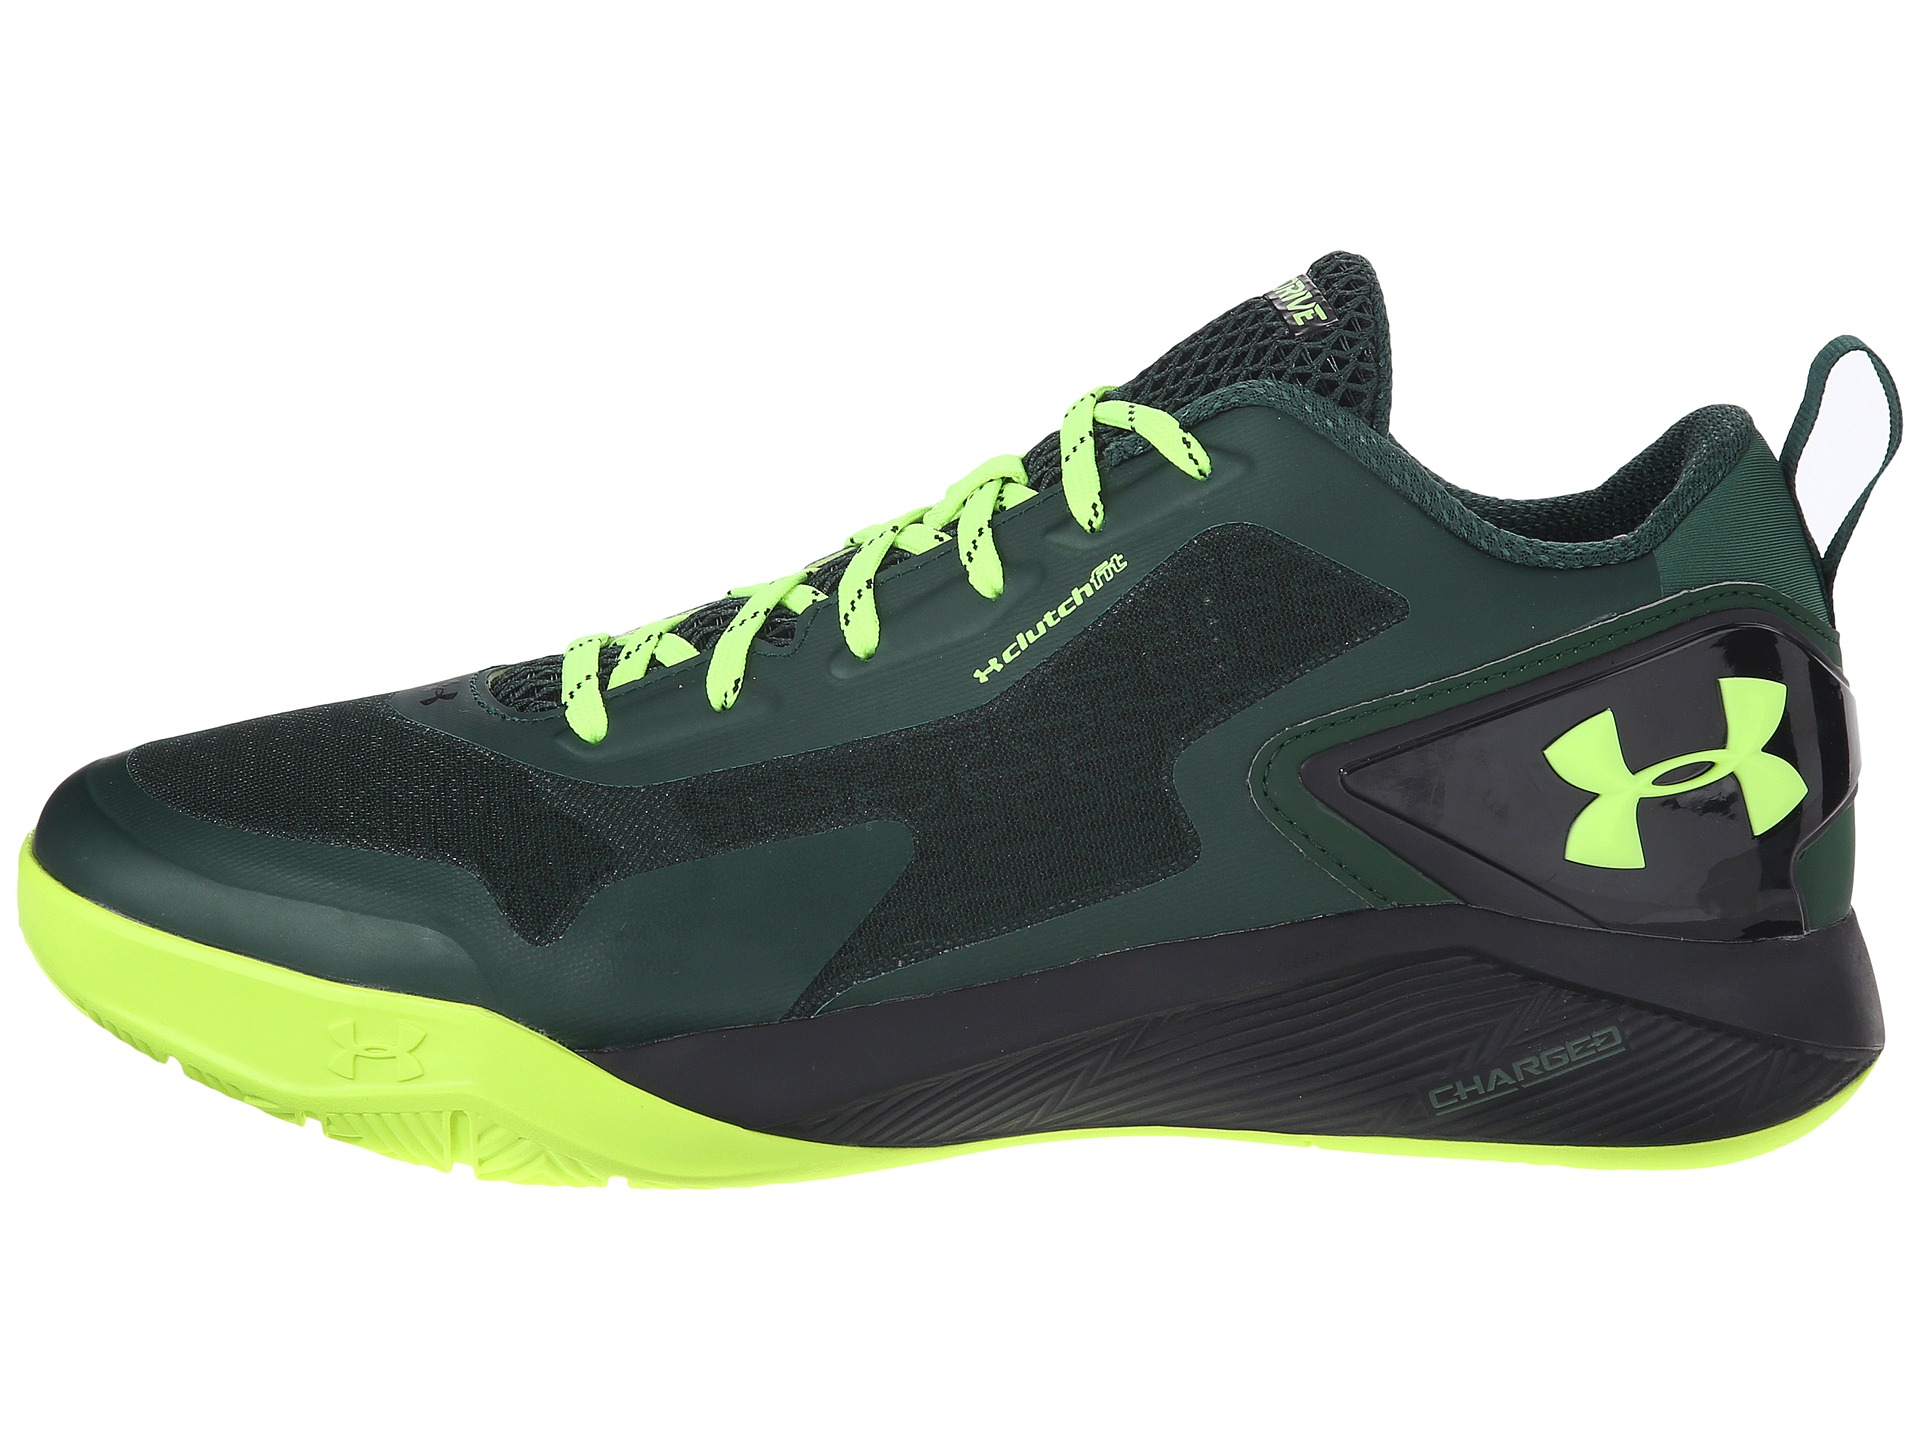 quality design 718fc d402f ... buy lyst under armour ua clutchfit drive 2 low in green for men fa8a0  d8423